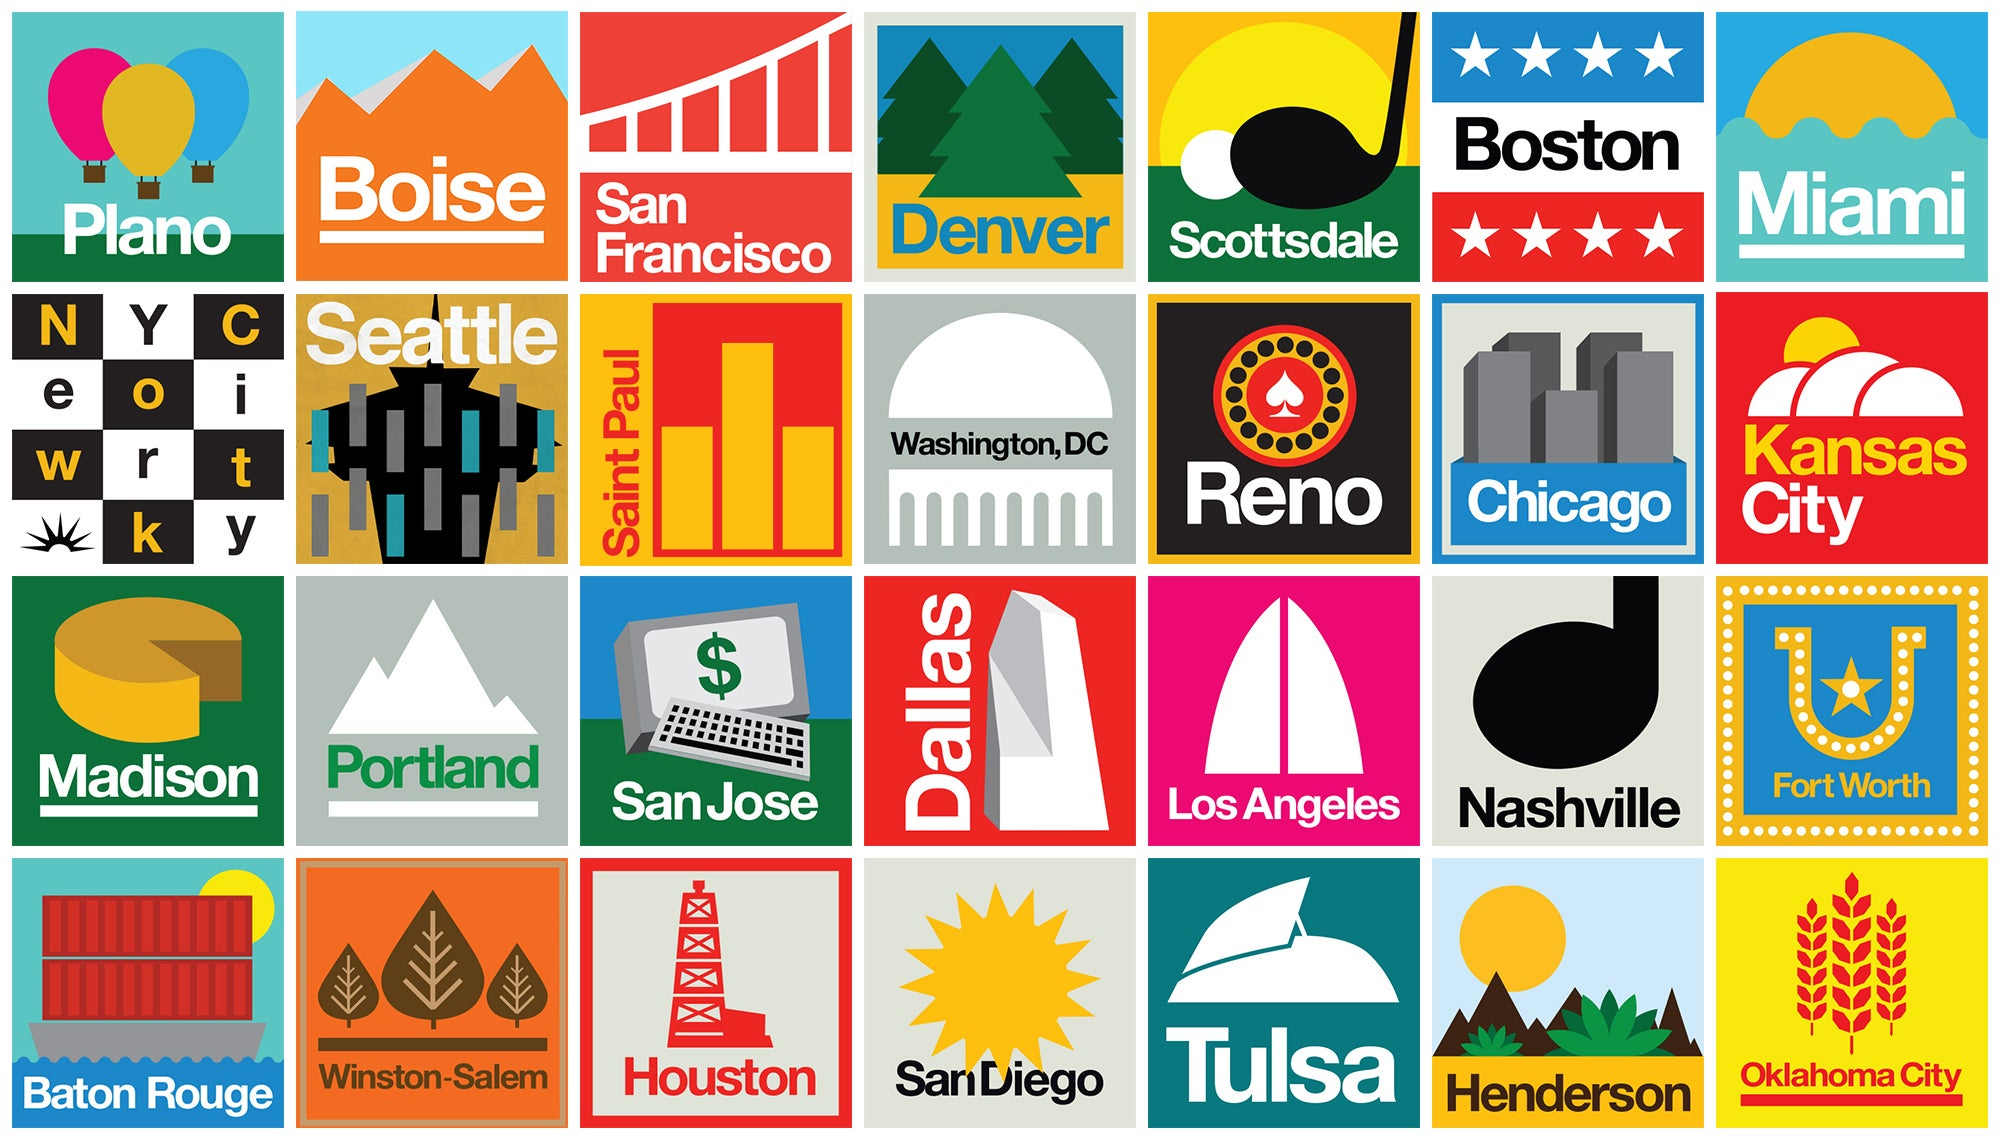 The Best U.S. Cities for People 35 and Under